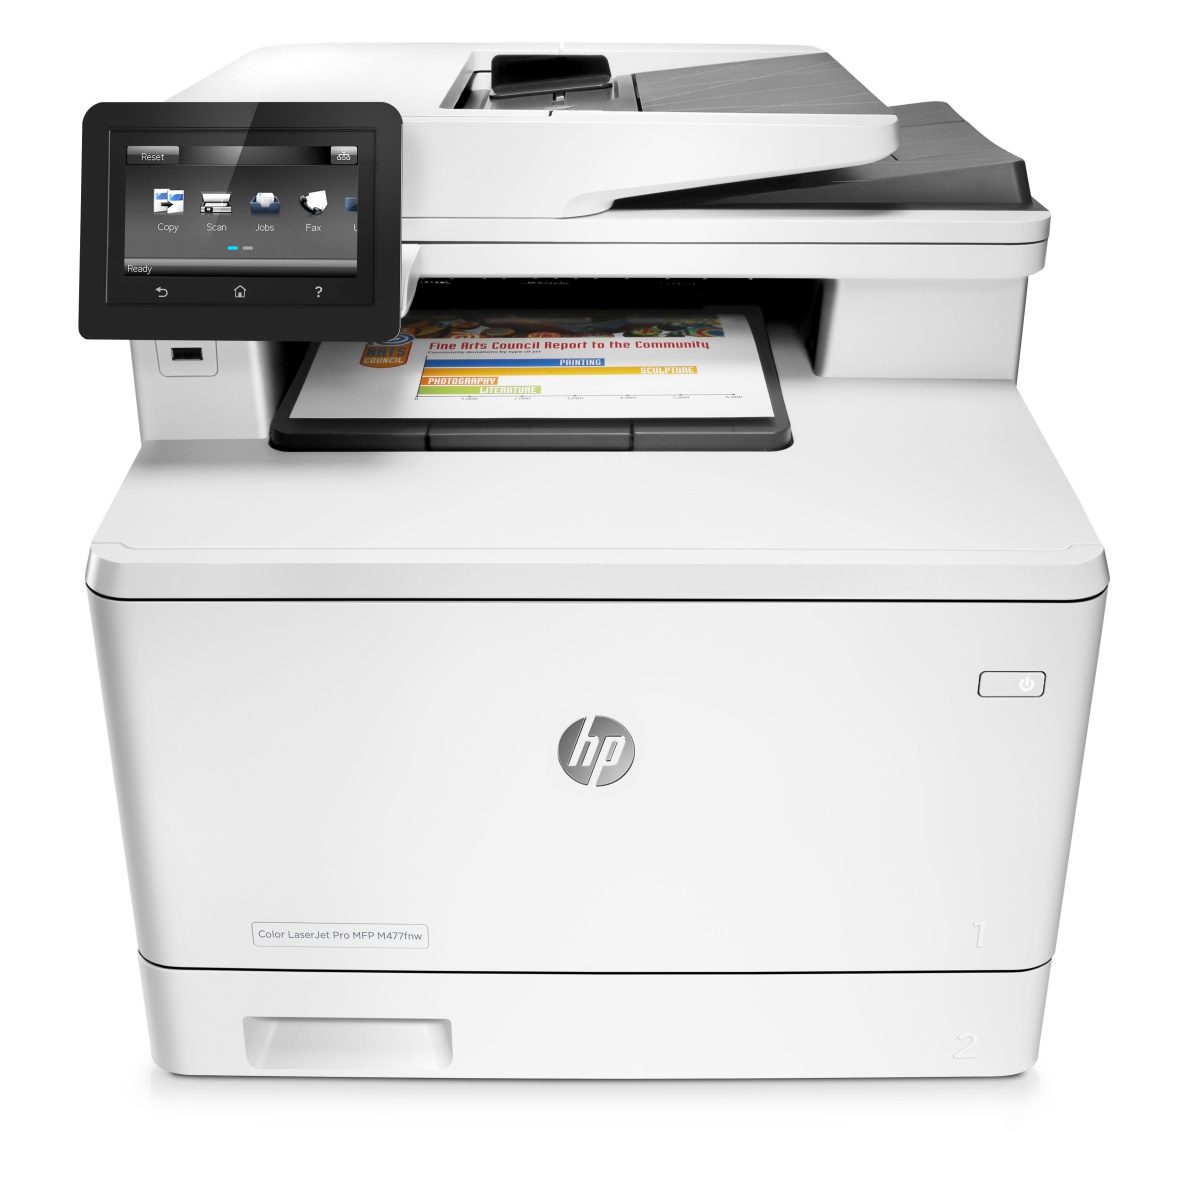 HP CLJ Pro MFP Color M477fnw (A4, 27/27 ppm, USB 2.0, Ethernet, Wi-Fi, Print/Scan/Copy/Fax)